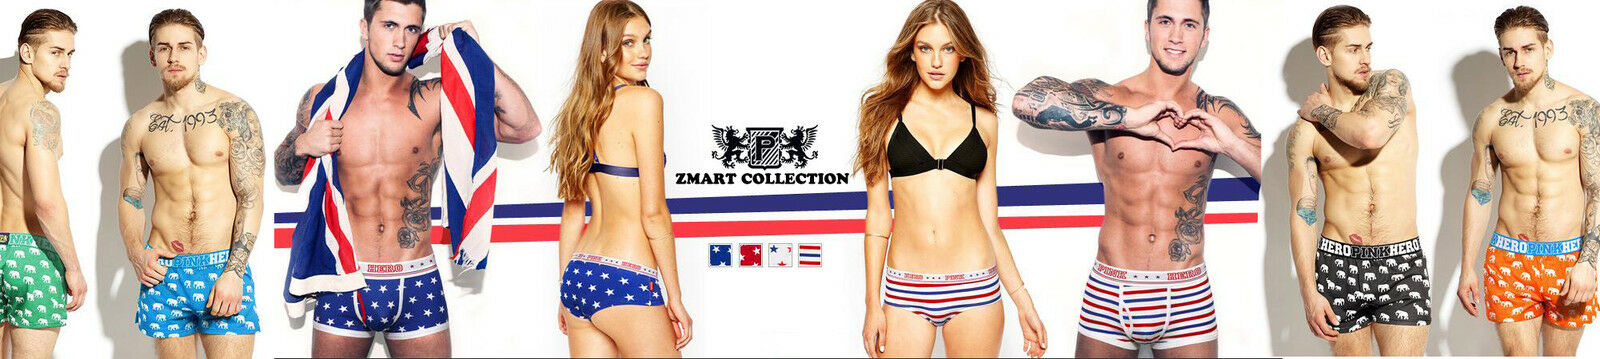 Zmart Collection